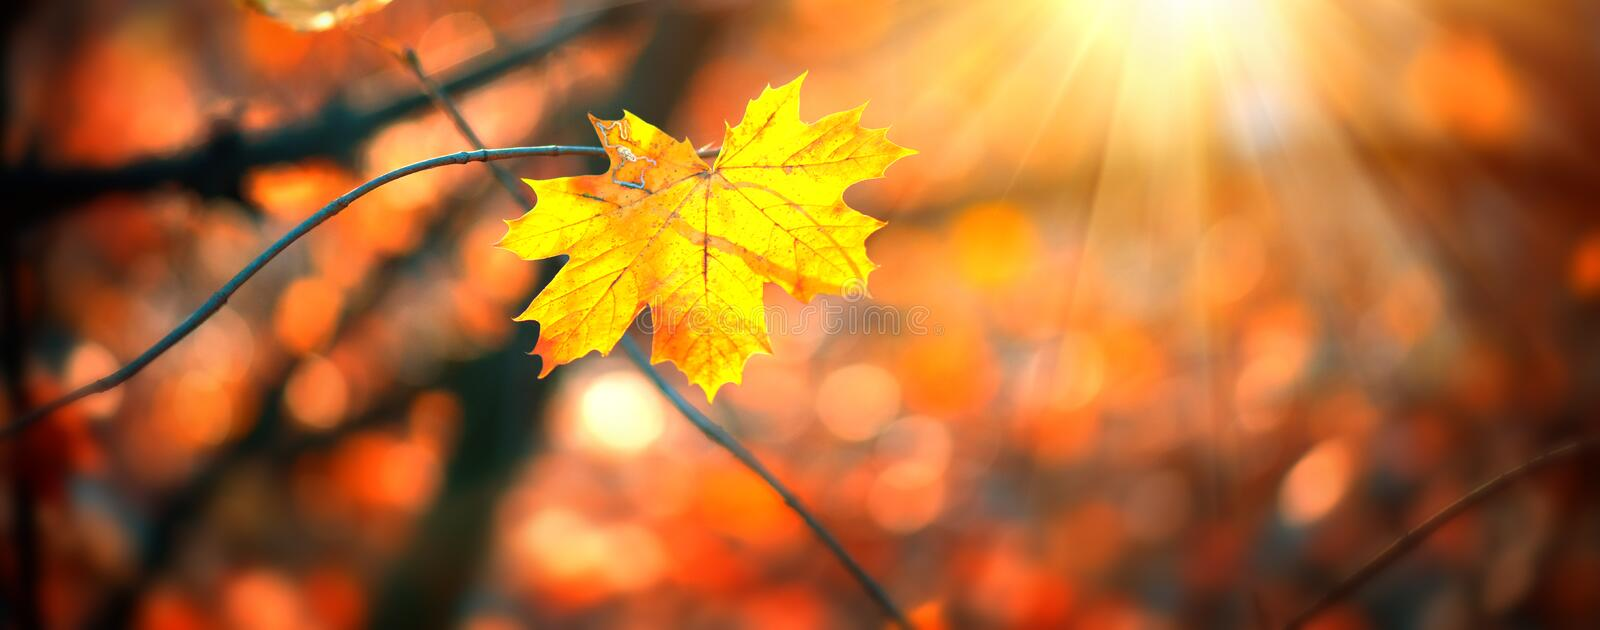 Autumn colorful bright Leaves swinging in a tree in autumnal Park. Autumn colorful background, fall backdrop. Backlit, sun flare. Beautiful nature scene royalty free stock images